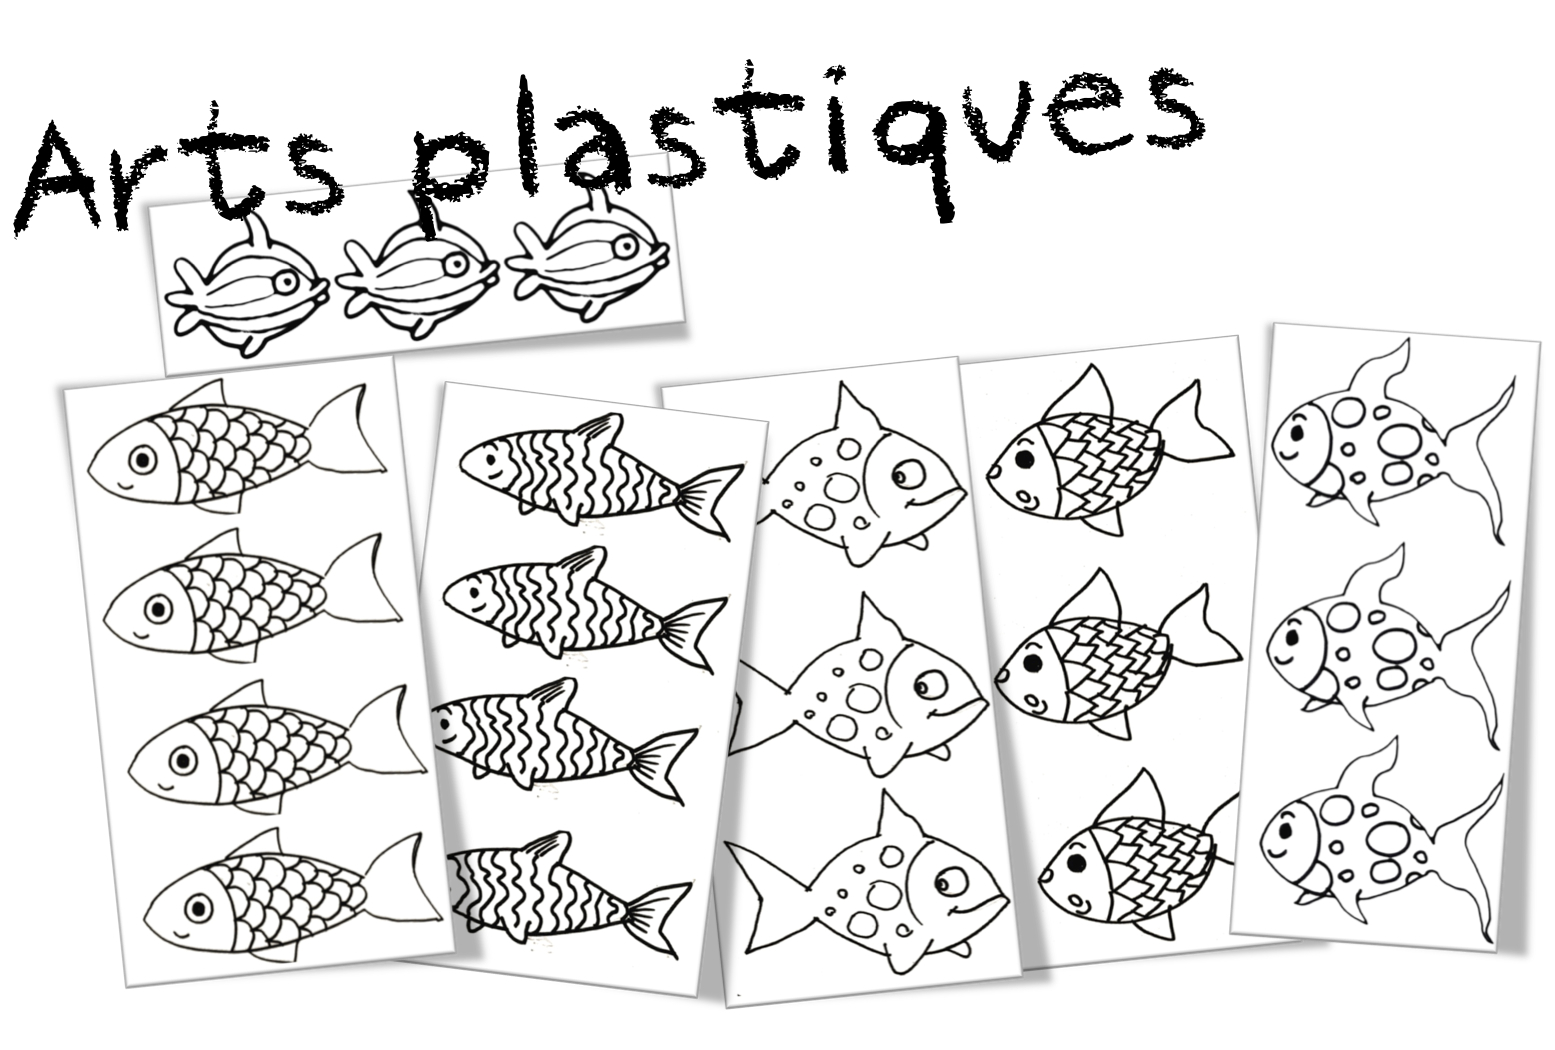 Le 1er avril coloriages production d crits po sie art plastiques bout de gomme - Poisson d avril dessin ...